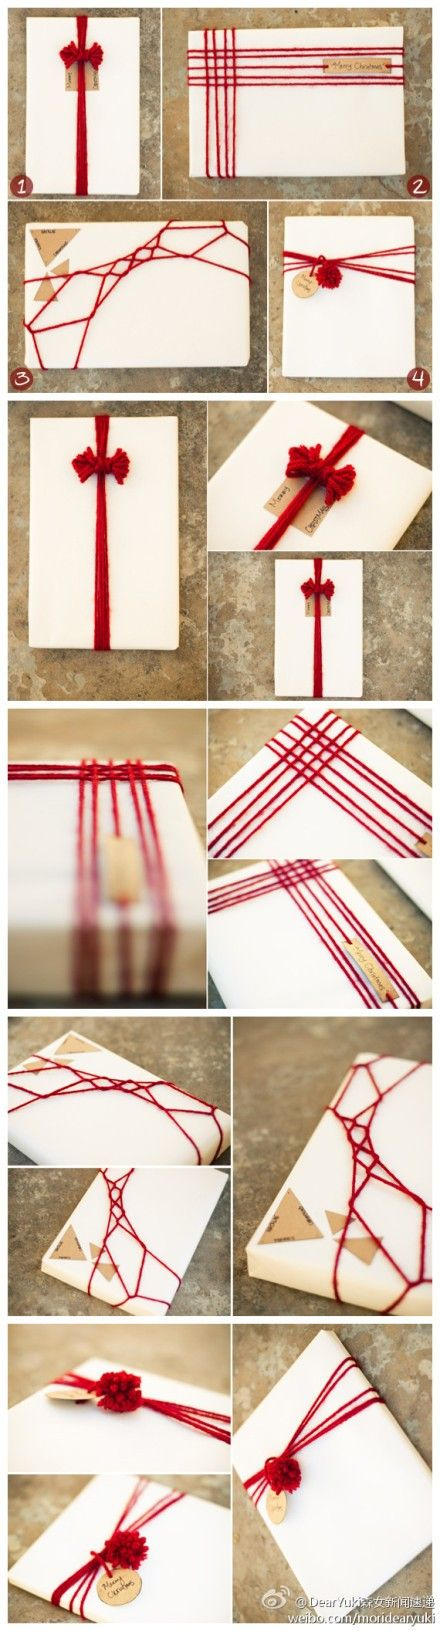 Gift wrapping ideas                                                       …                                                                                                                                                                                 Más